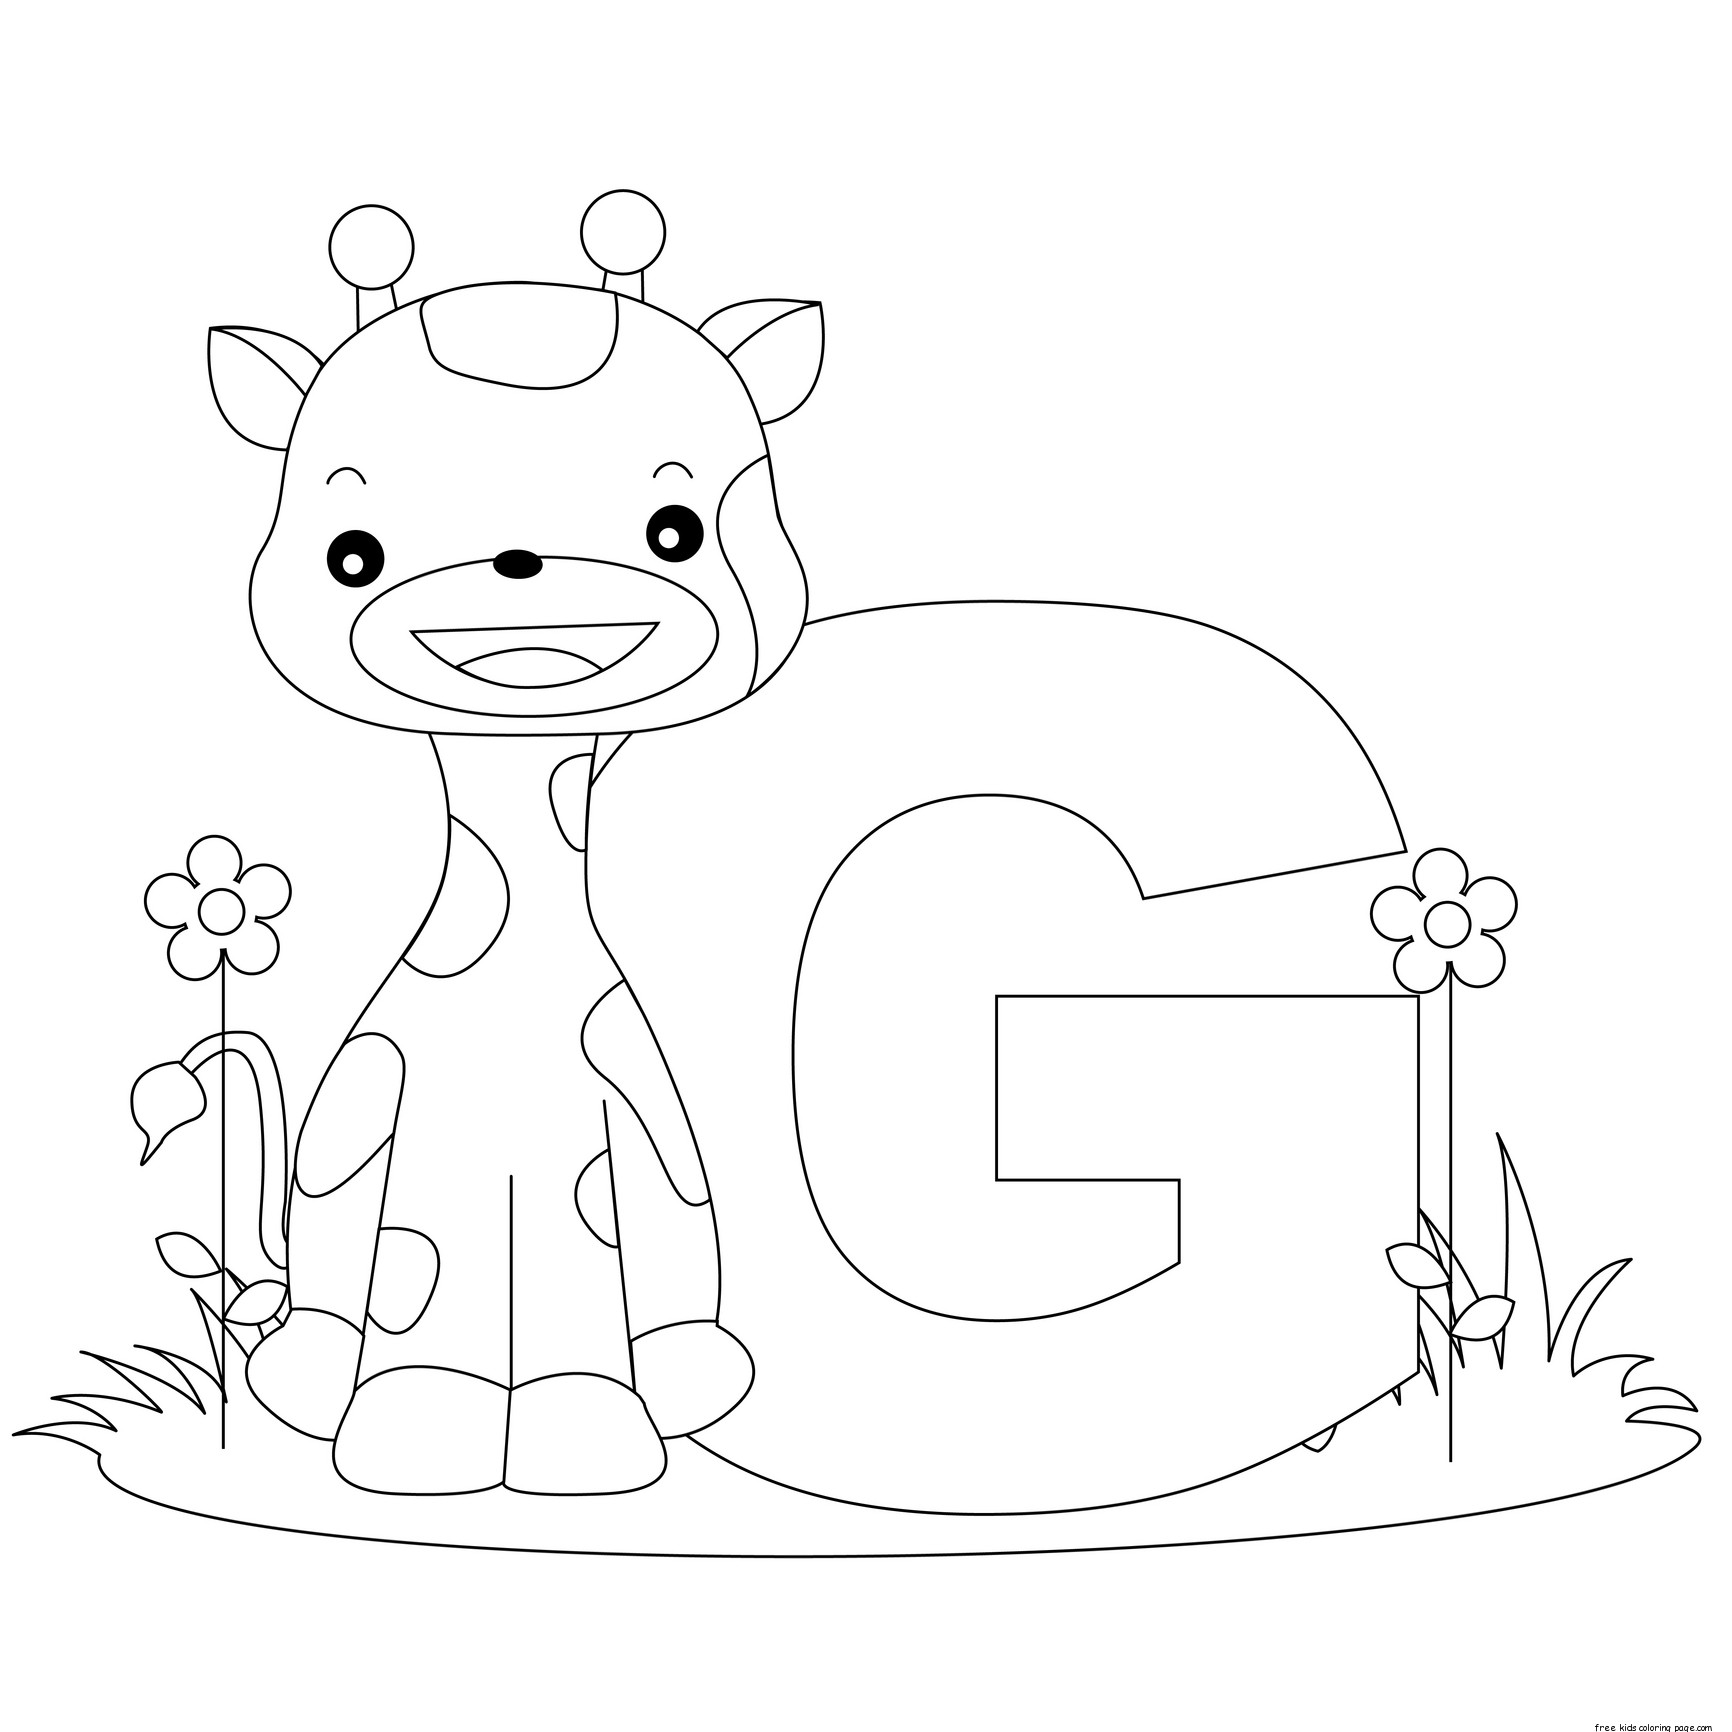 Coloring Pages Animals Letters : Alphabet letter g for preschool activities worksheetsfree